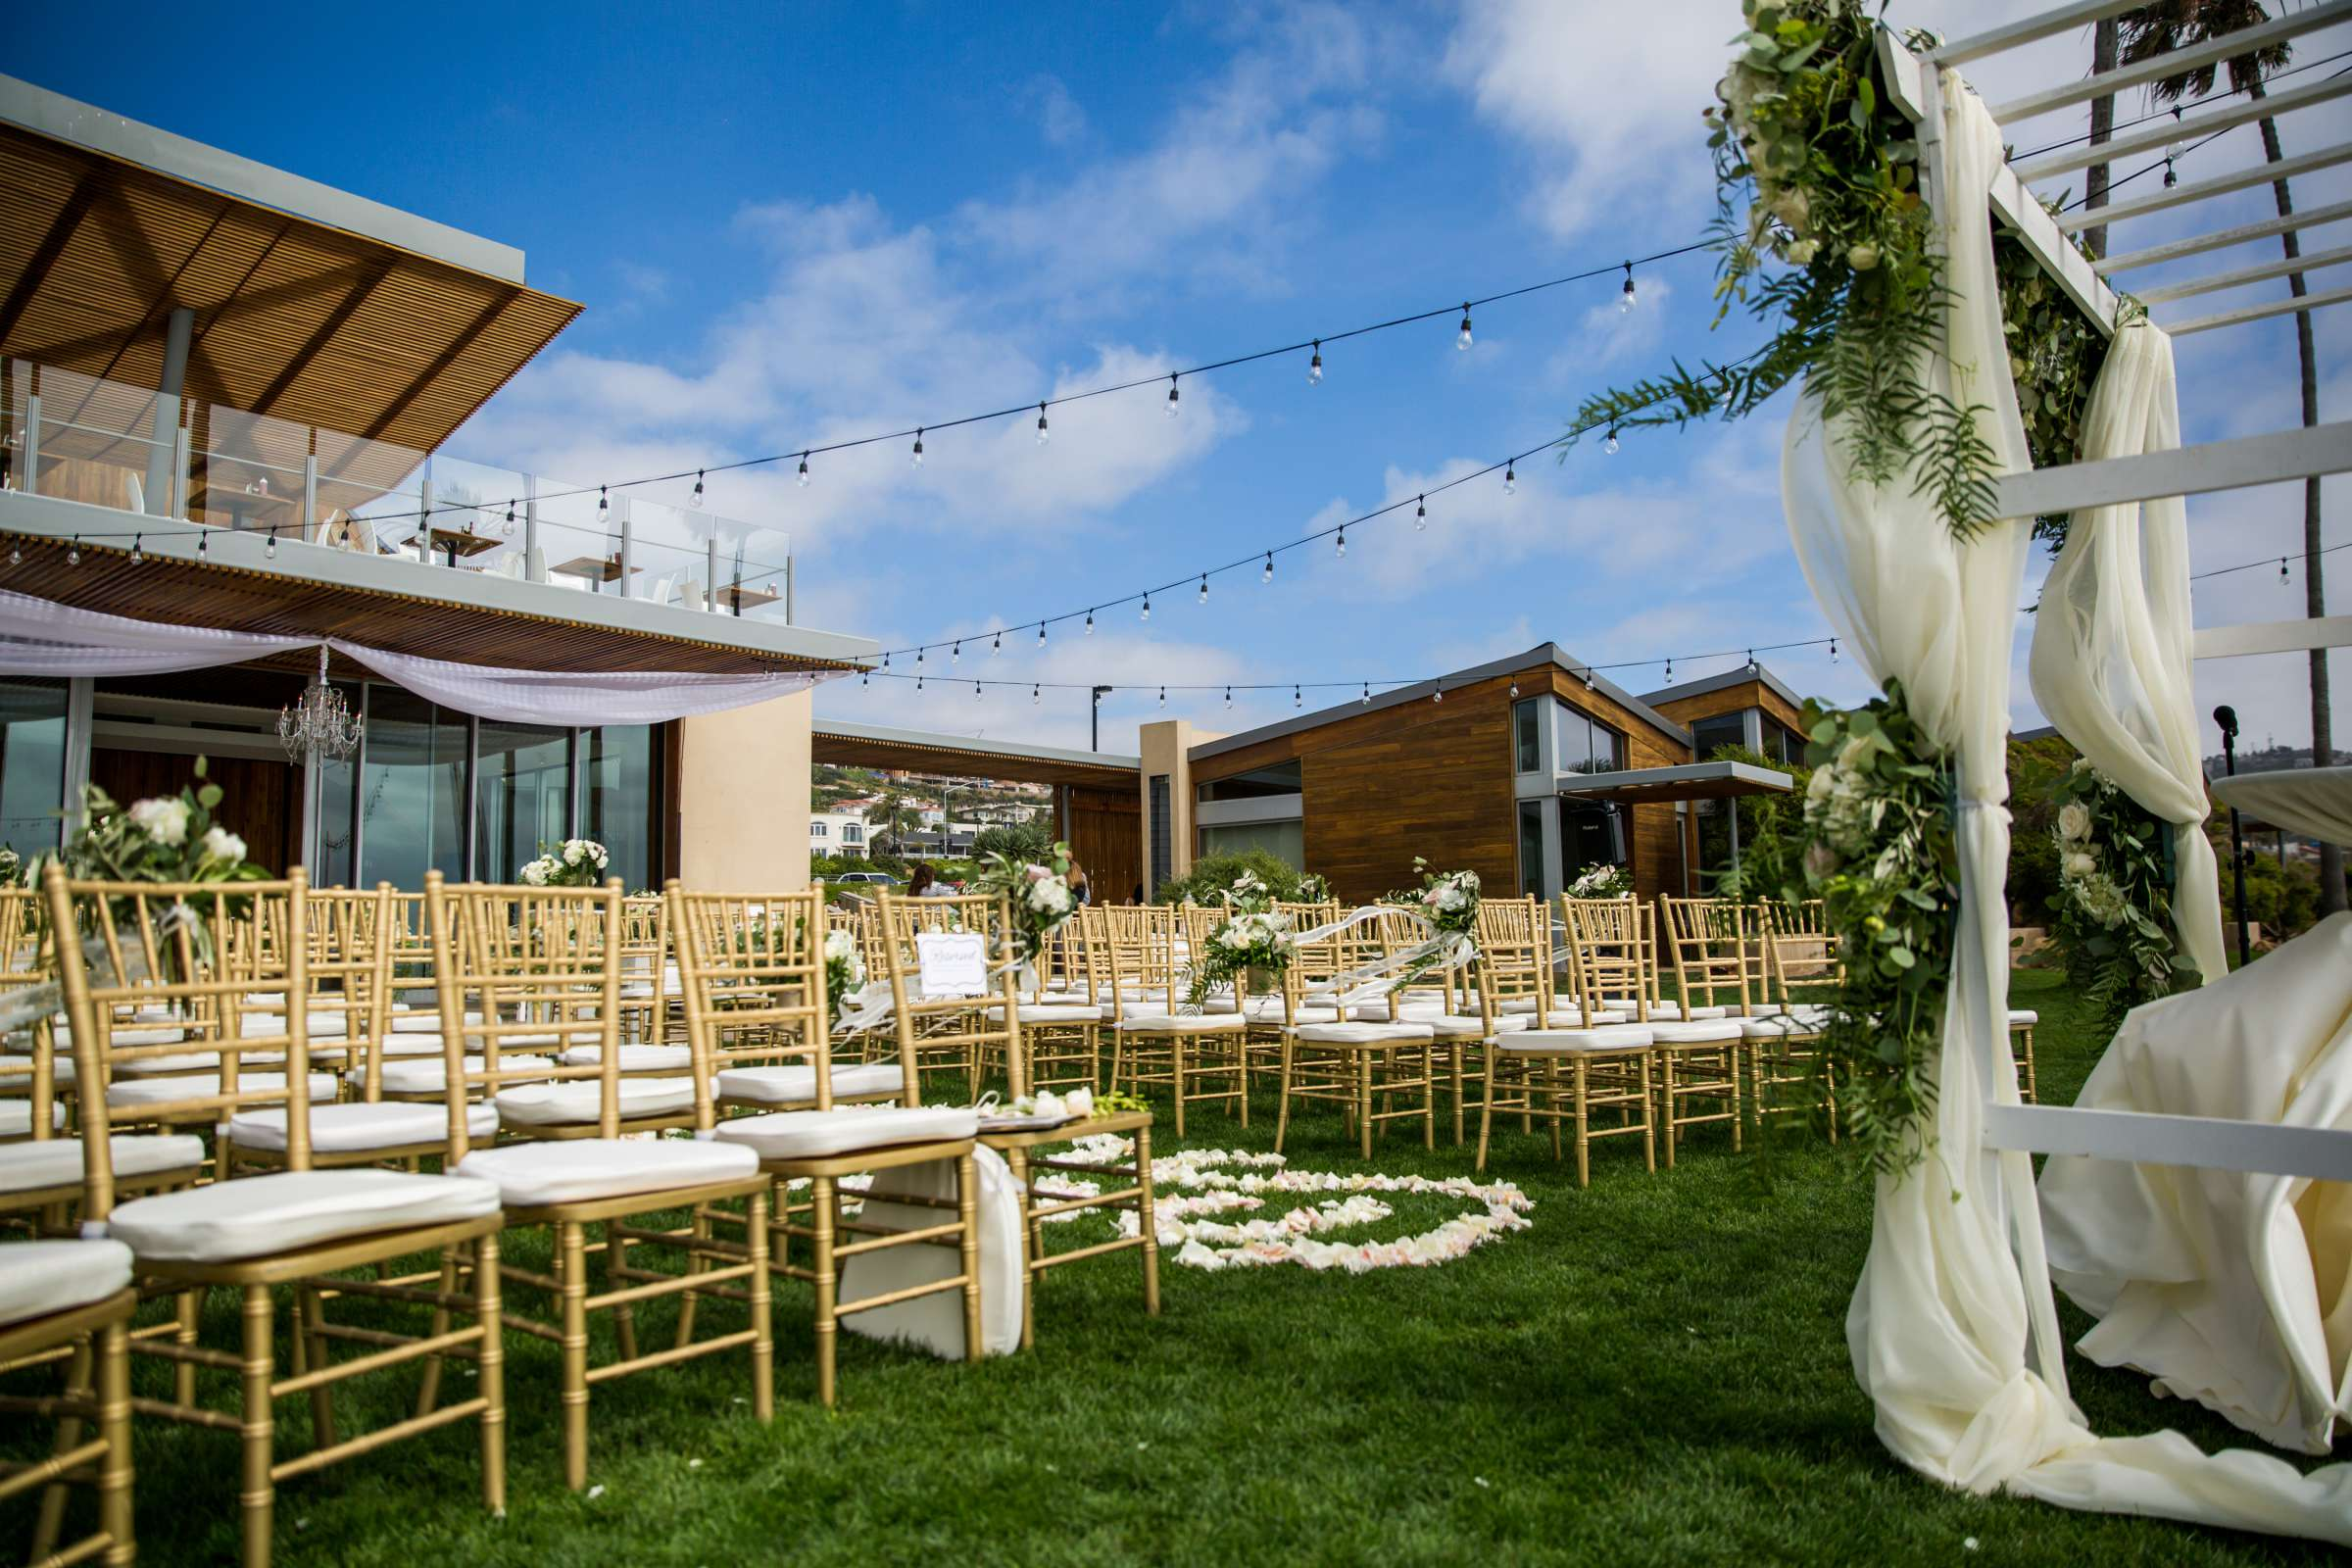 Scripps Seaside Forum Wedding coordinated by Lavish Weddings, Cindy and Justin Wedding Photo #381932 by True Photography